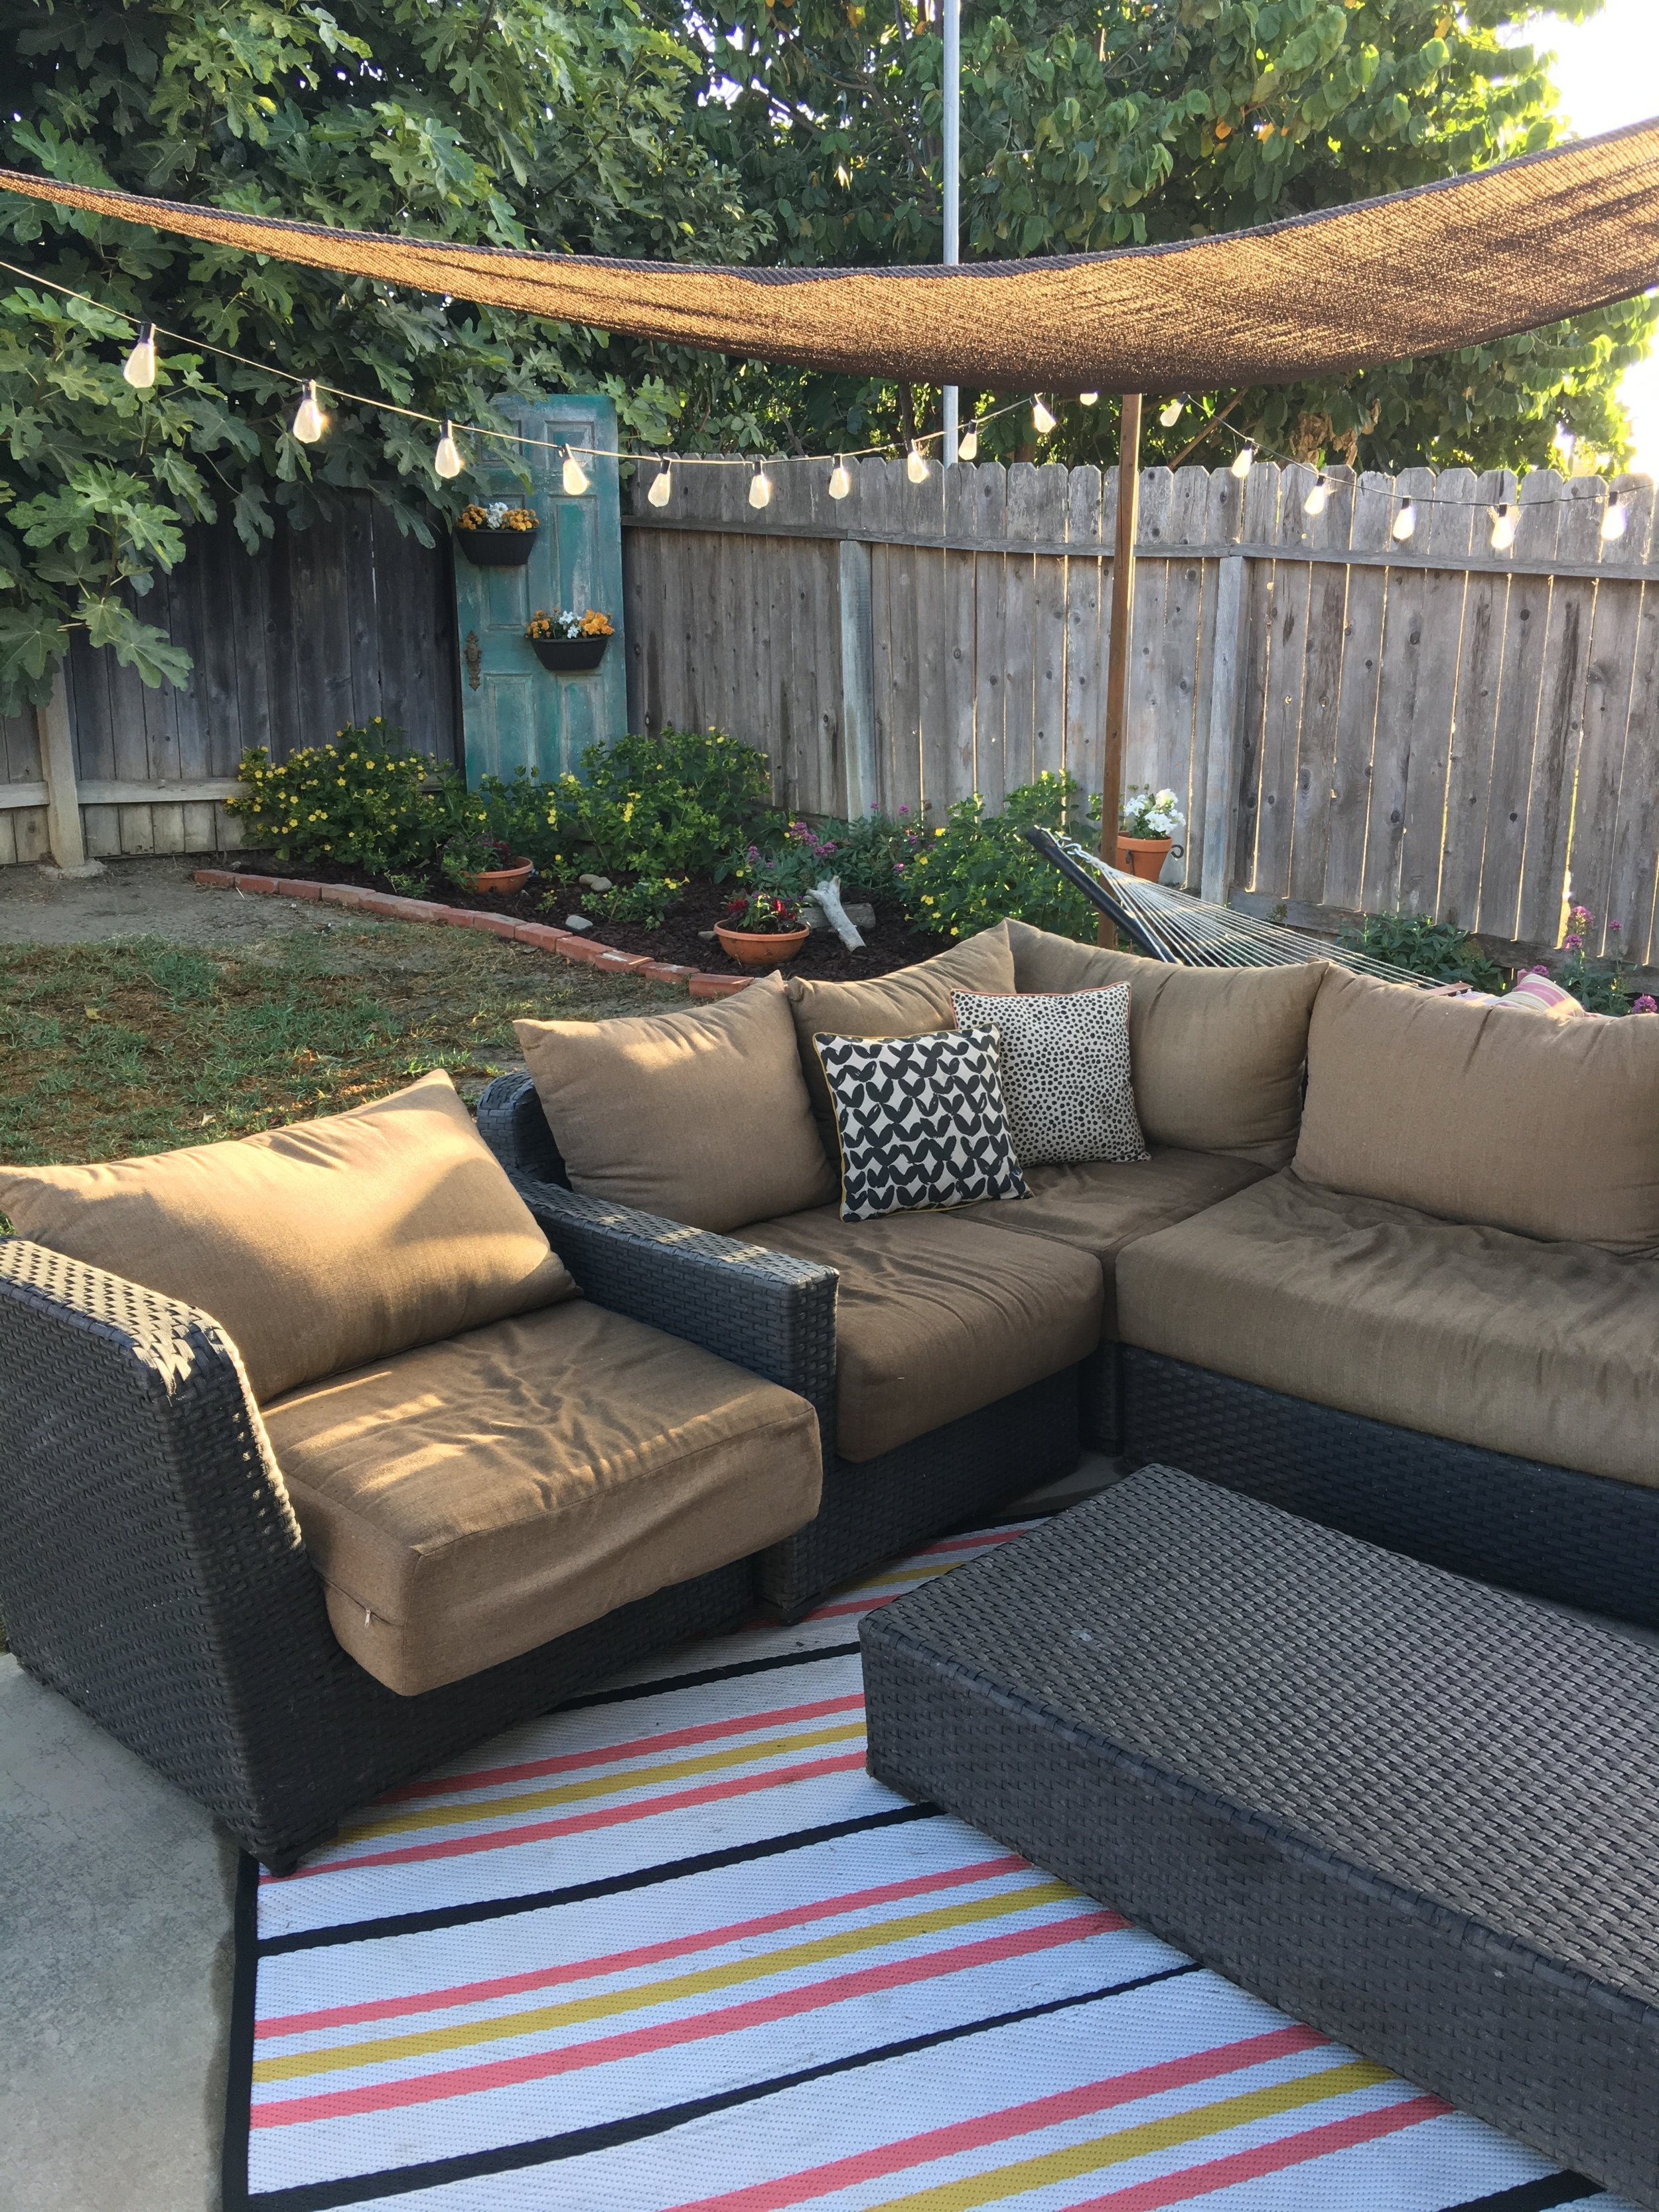 Canopy Under $40 - I'm all about a budget option. I love sun sails for shade. They offer UV protection and aren't super obtrusive. Plus they come in different colors and shapes so you are bound to find one that works for your space.